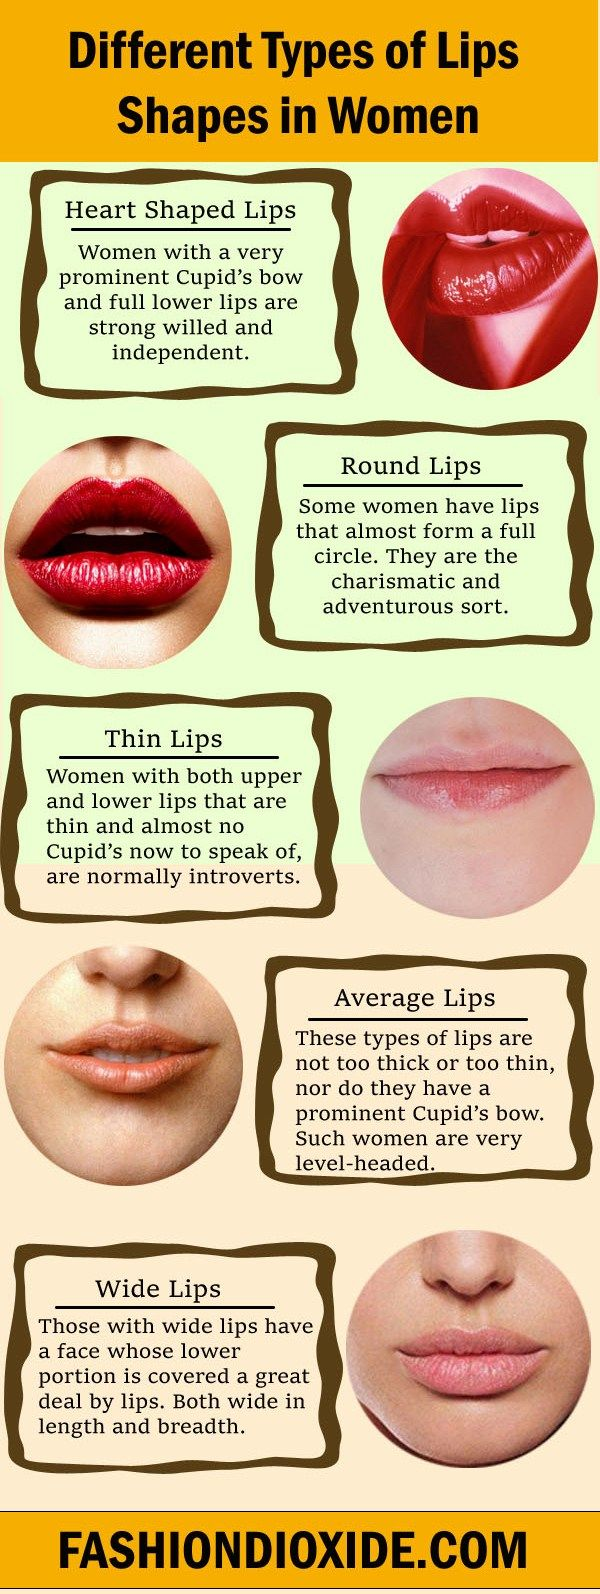 Types of Lips Shapes || Types of Lips Shapes and What they explain about you ||| 5 Different Types of Lips Shapes in Women